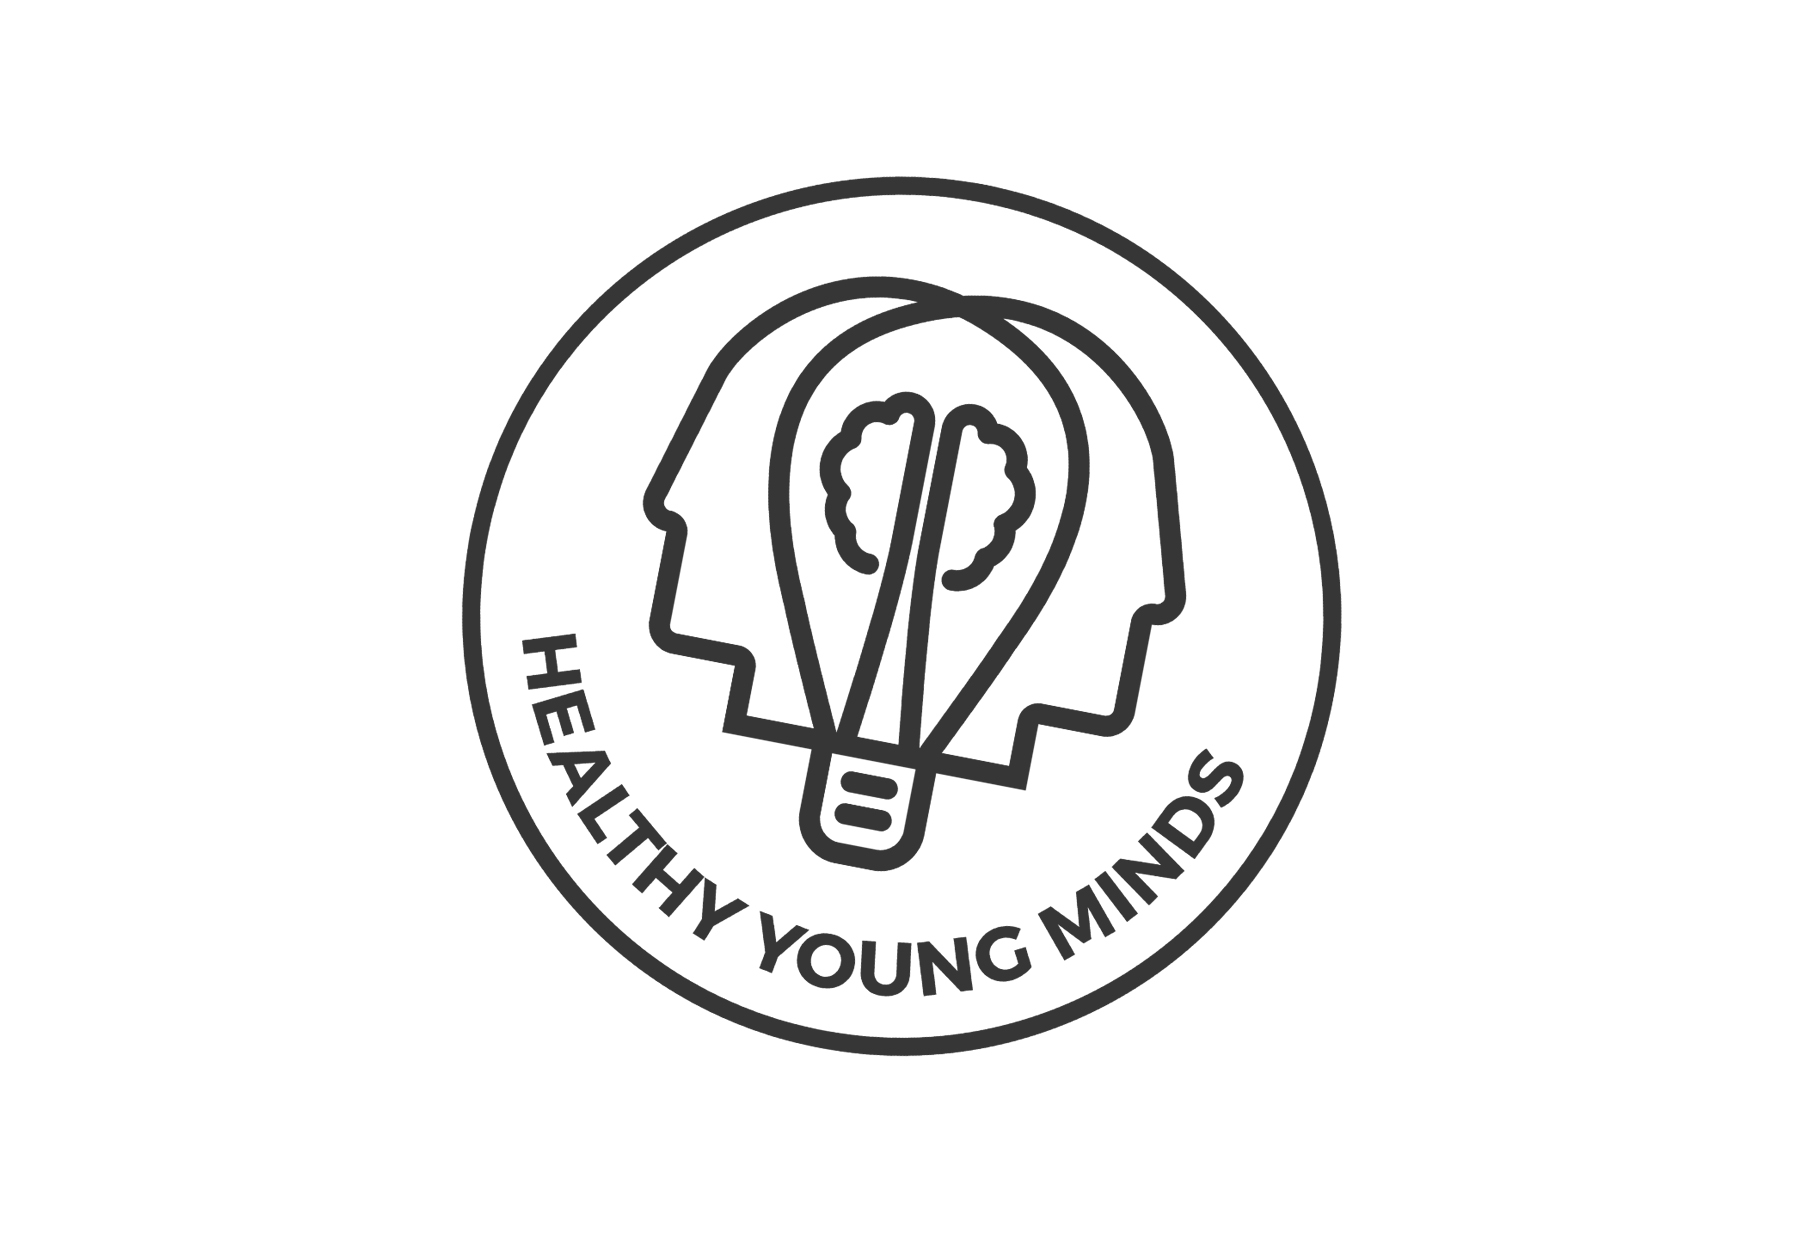 Healthy Young Minds Stamp